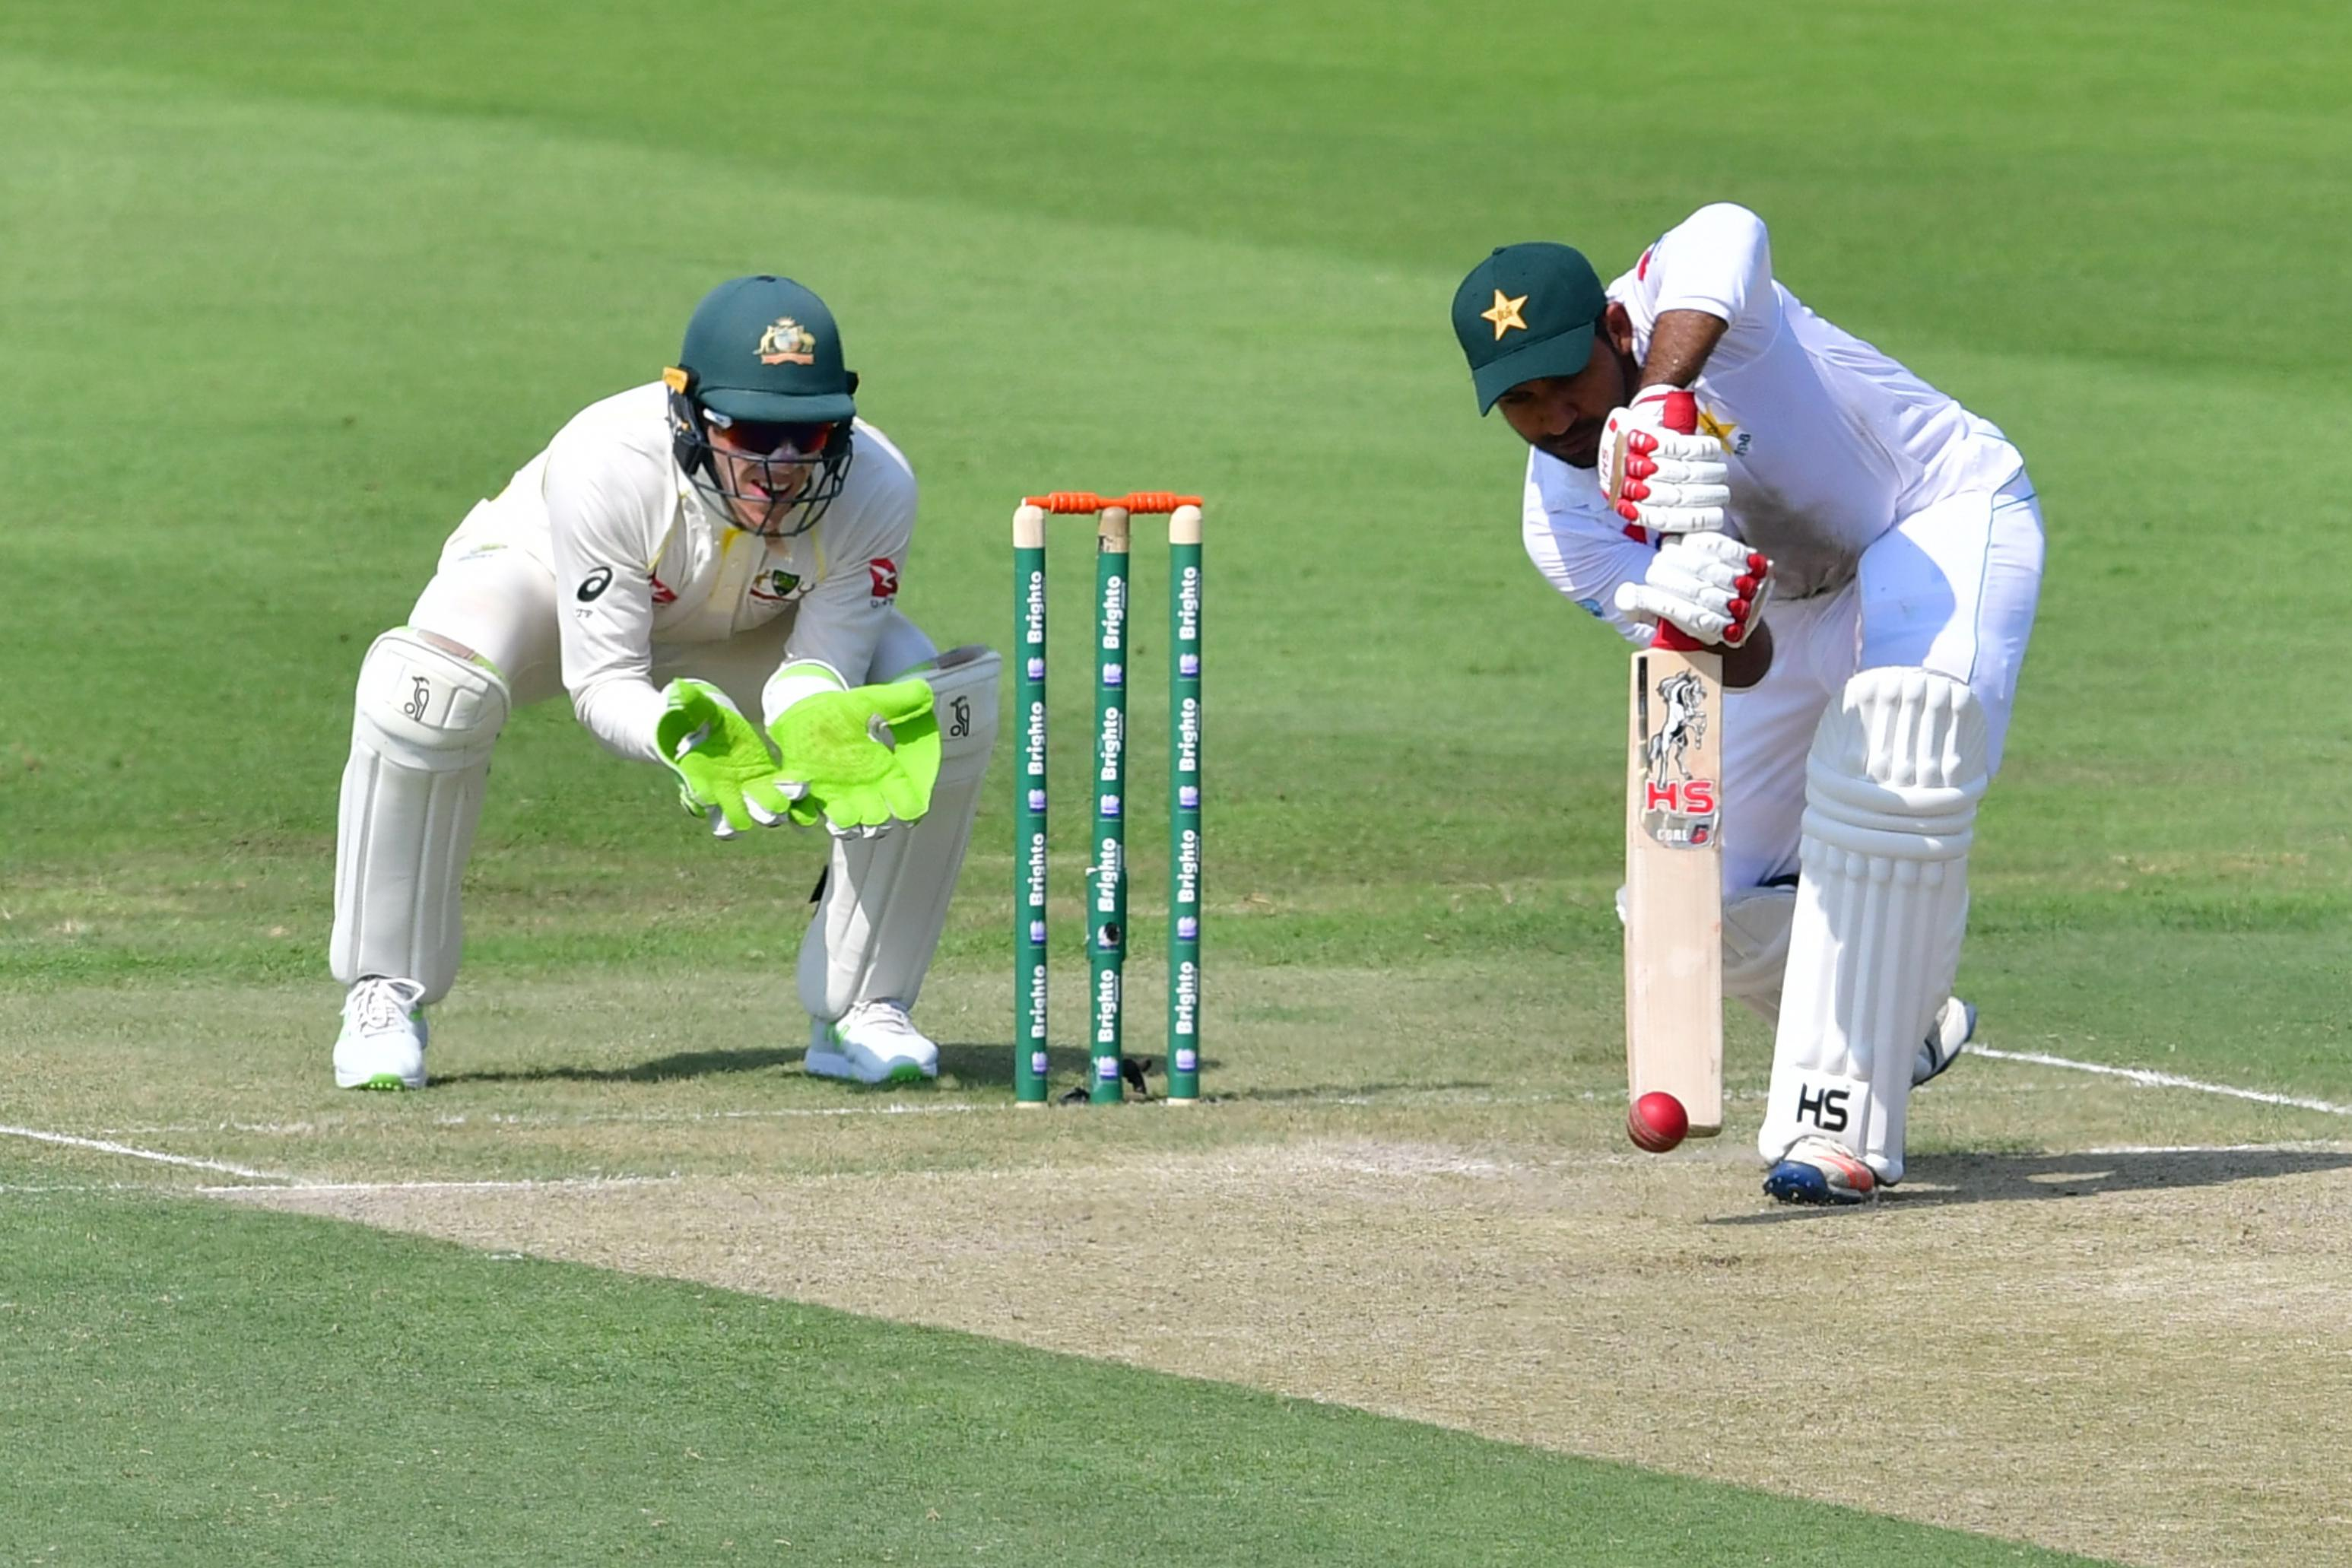 'Played attacking shots to put Australia on back foot'- Sarfraz Ahmed